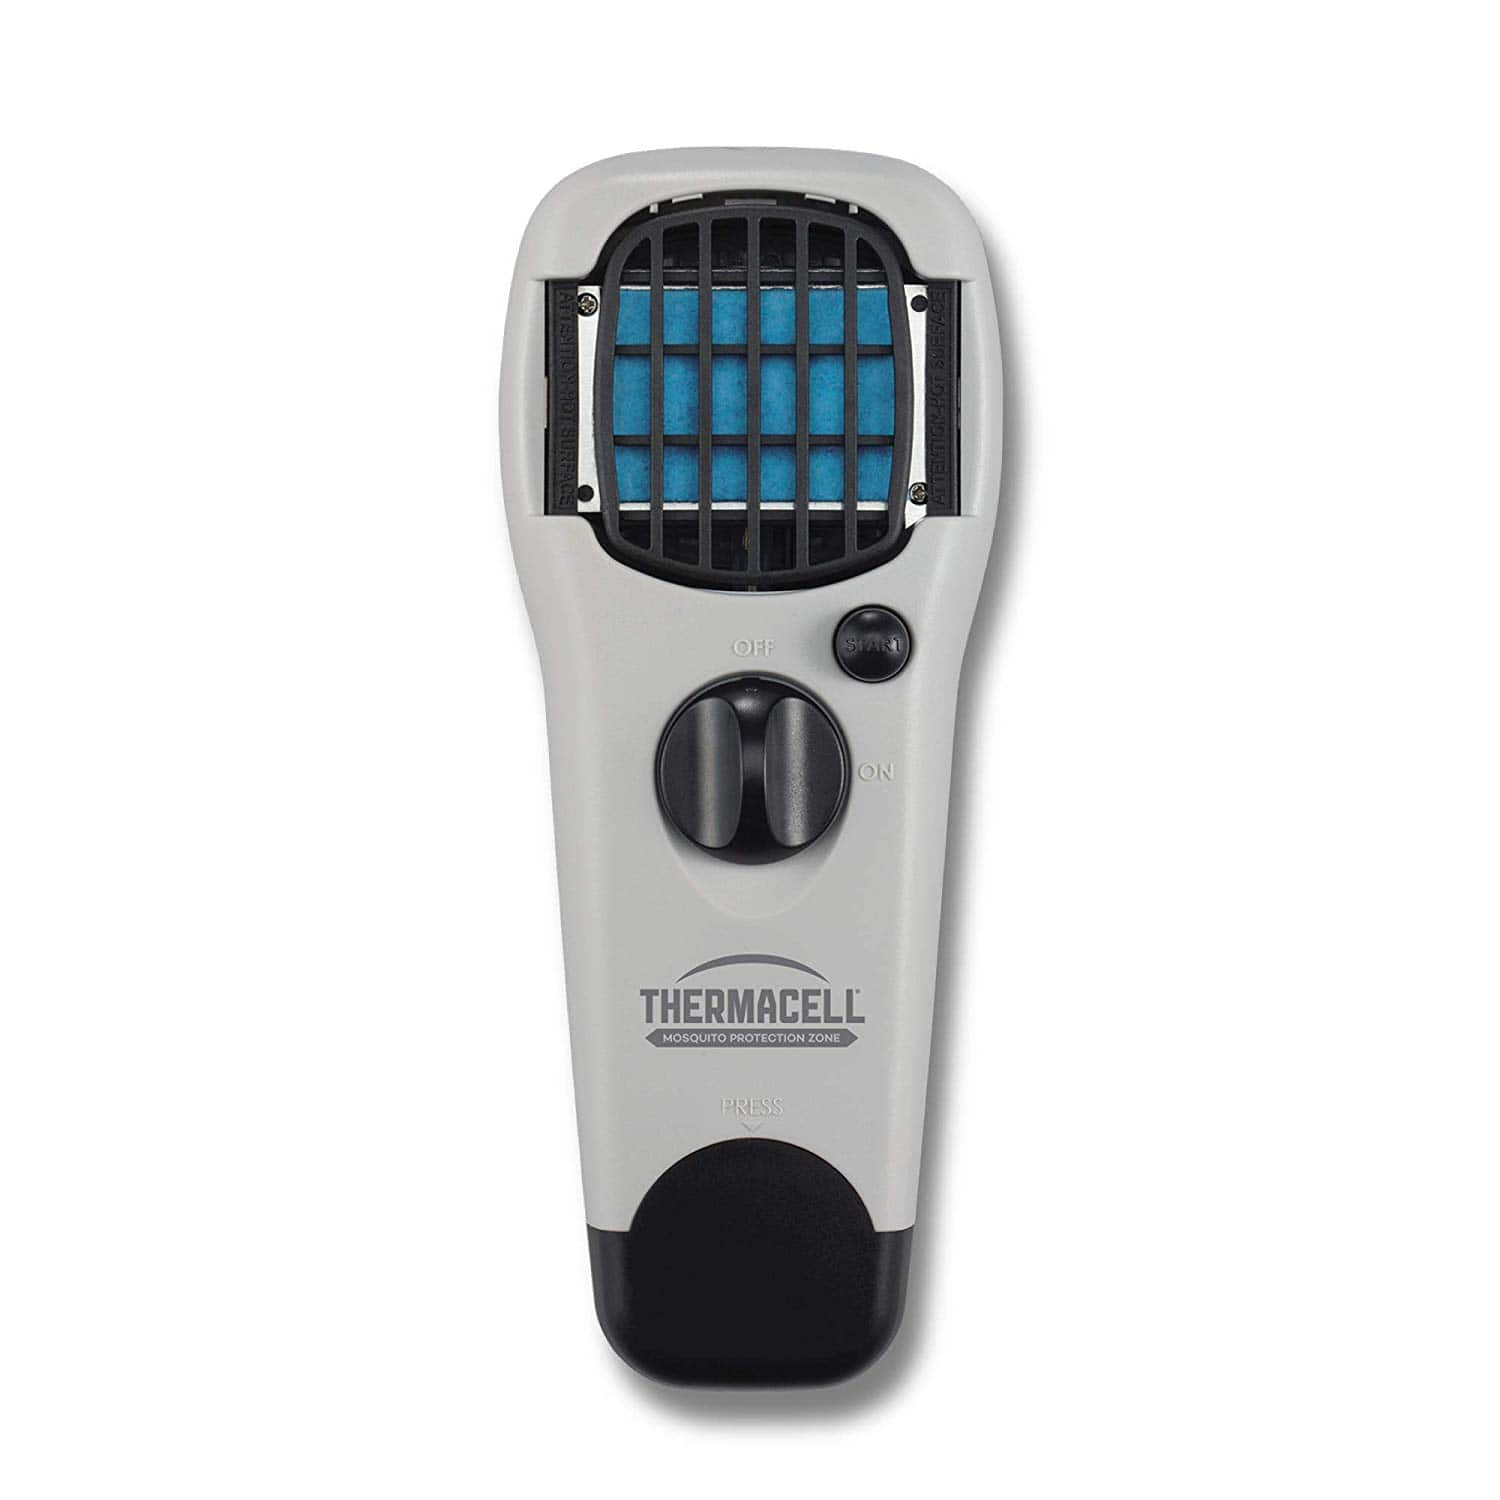 Thermacell MR150 Portable Mosquito Repeller, Gray - Free Prime Shipping on Amazon $16.32